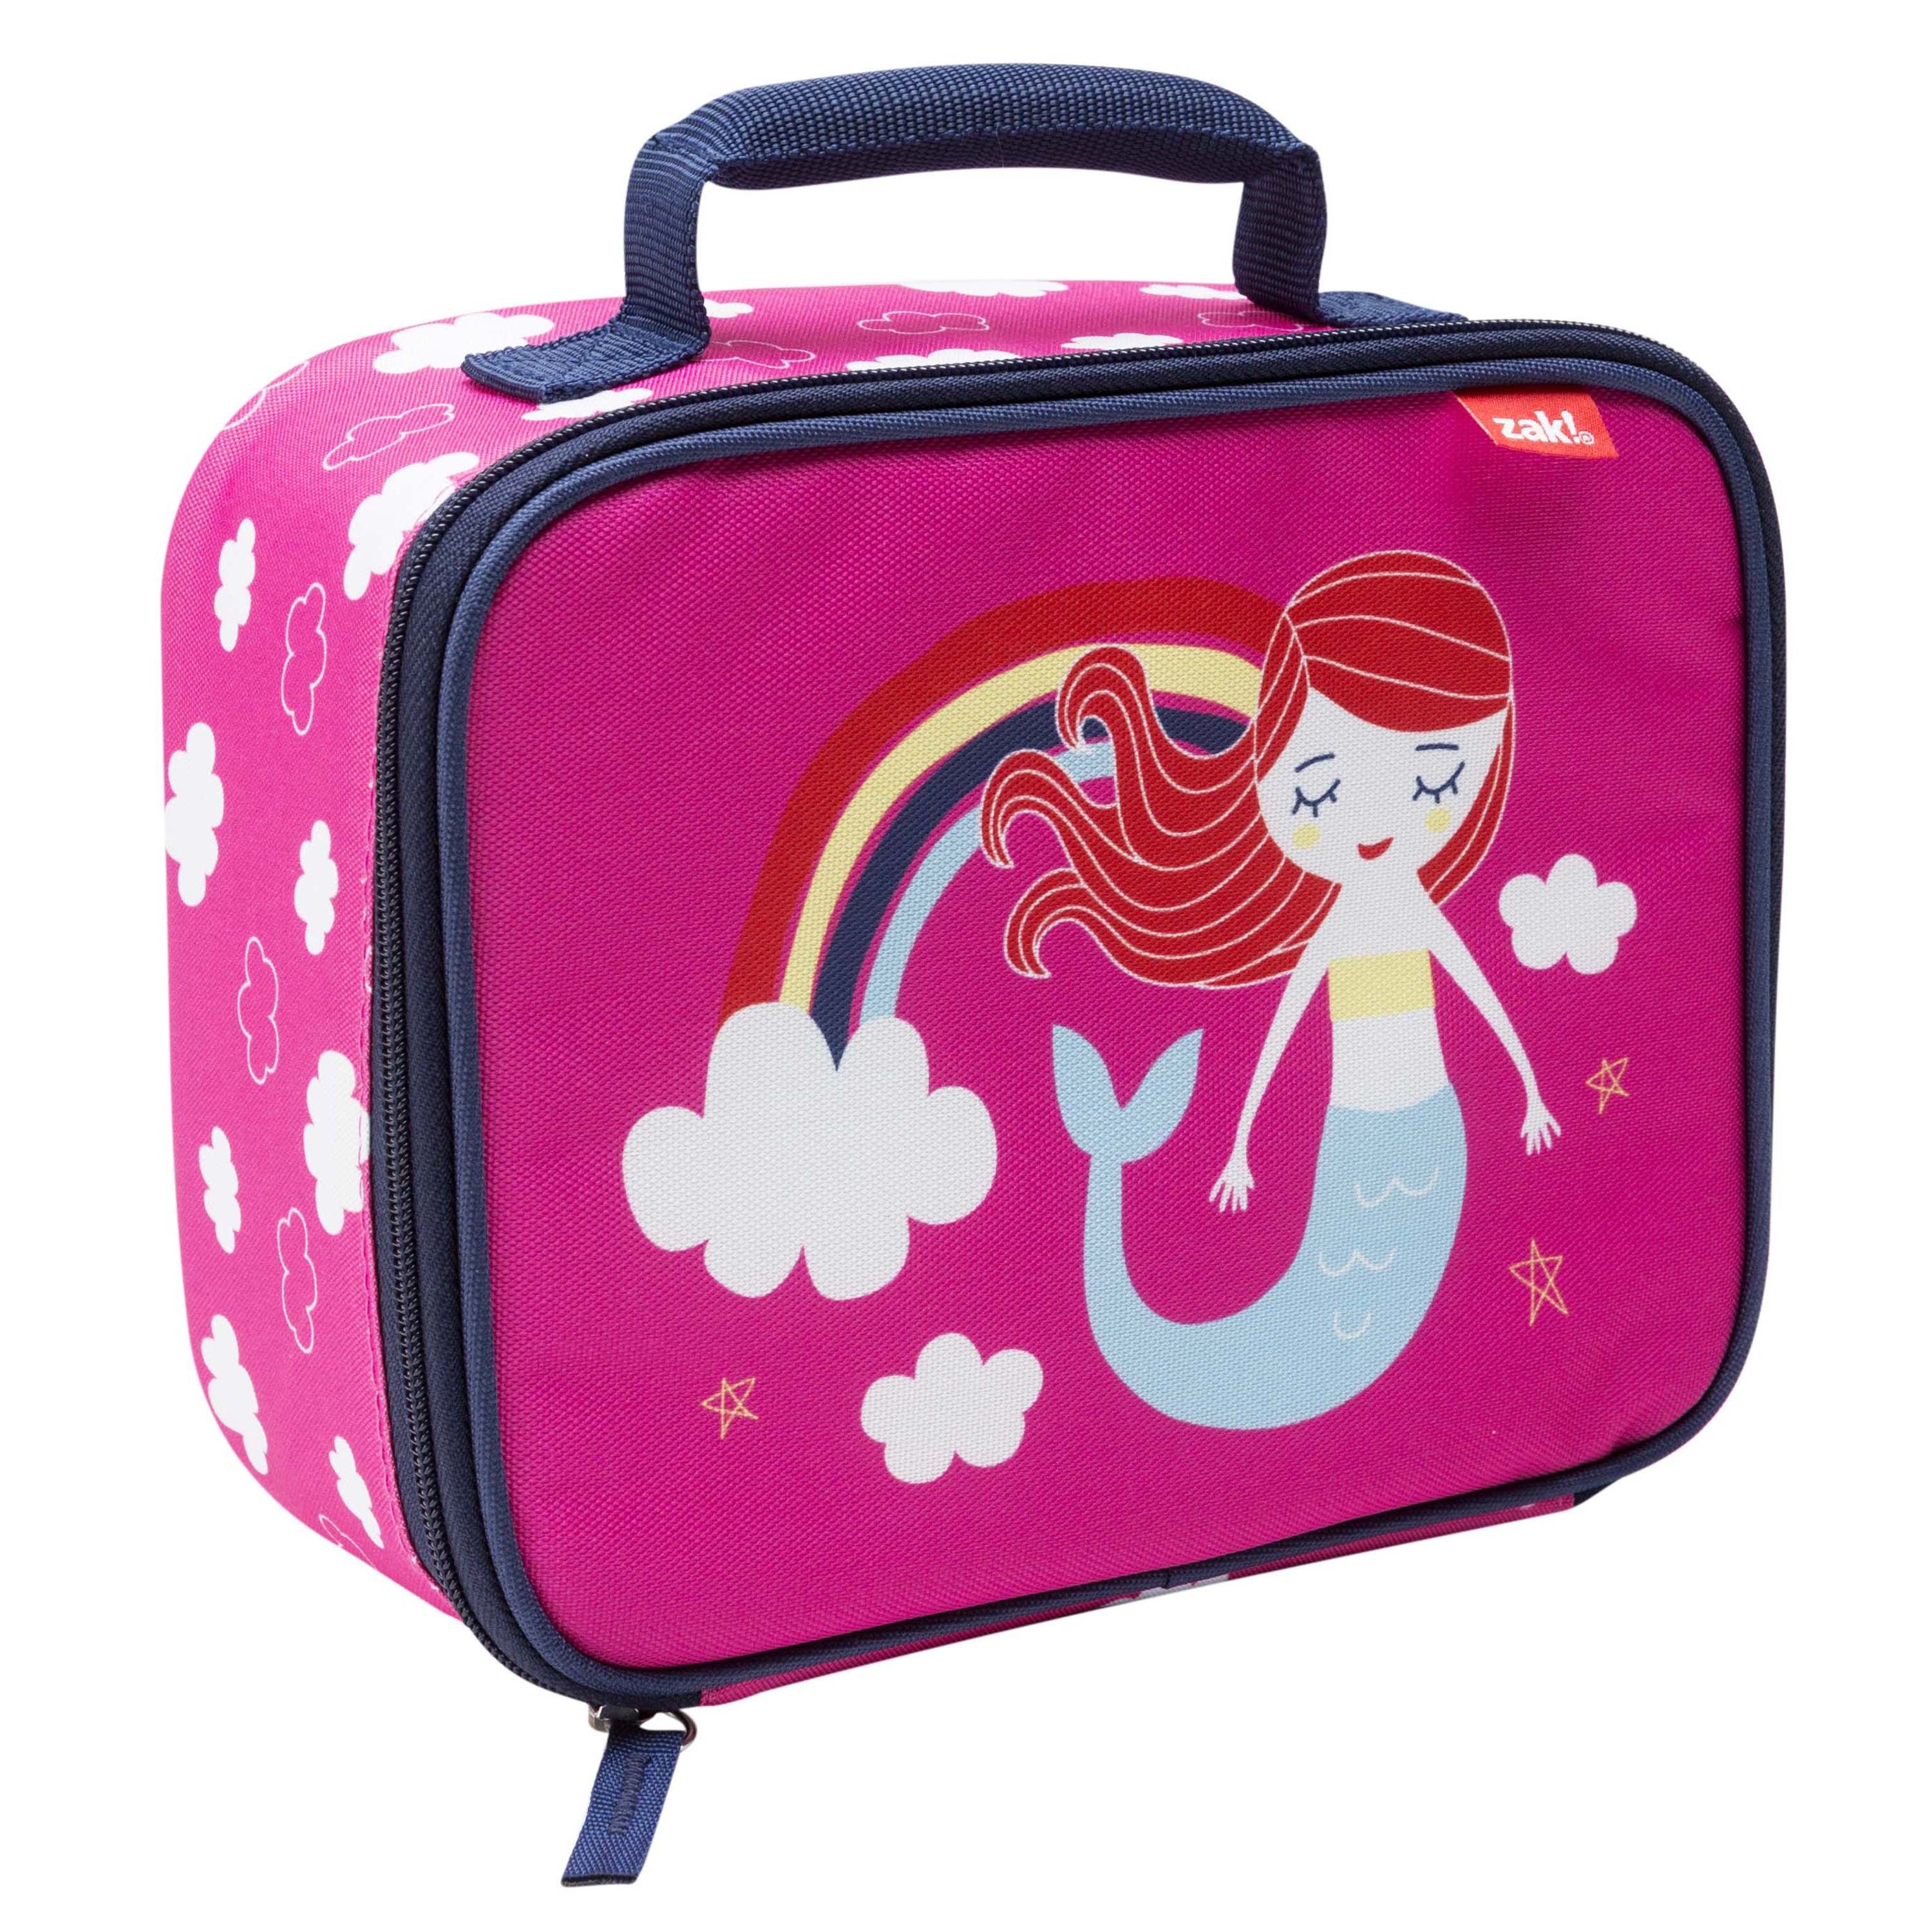 Happy Things Insulated Reusable Lunch Bag, Mermaids slideshow image 3